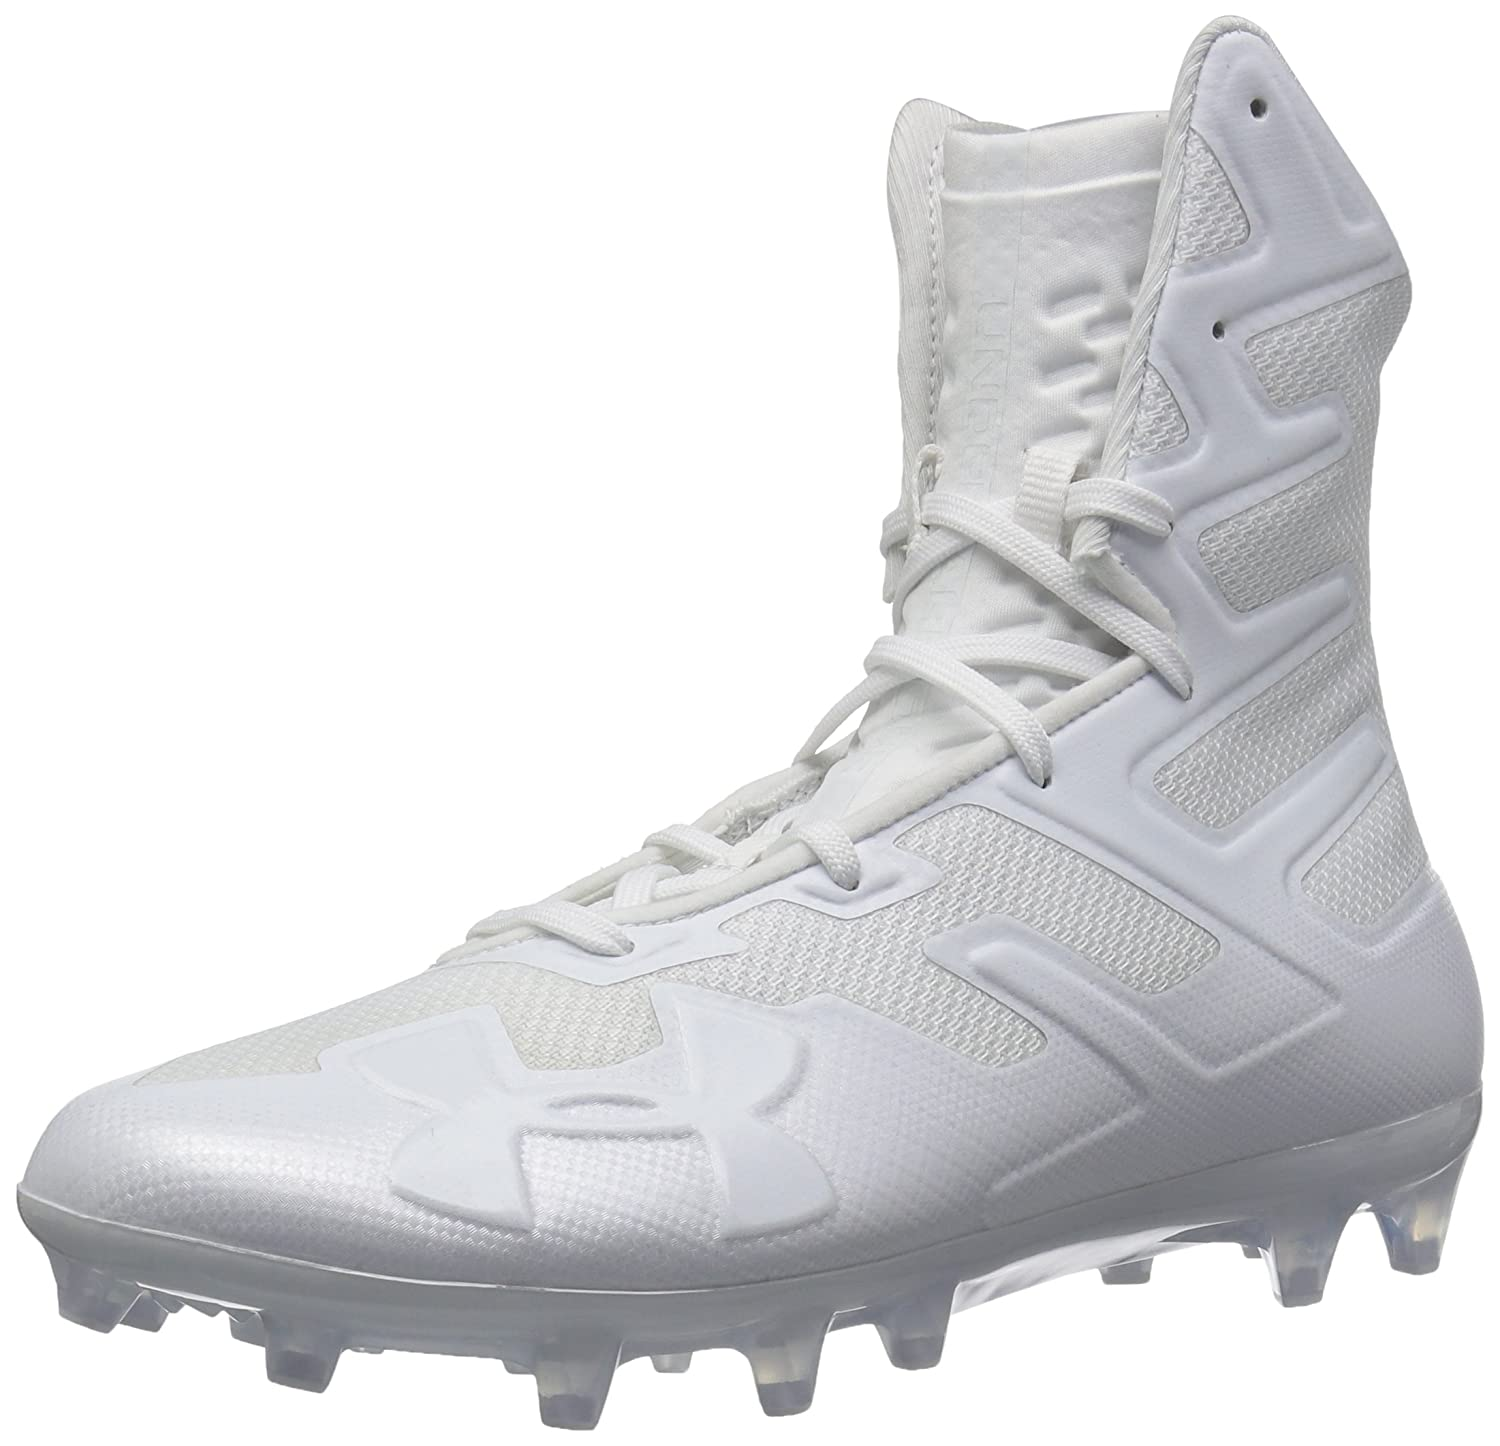 [アンダーアーマー] Men's Highlight Mc High-Top Mesh Football Shoe B077VQZ5CH White (100)/White 10 M US 10 M US|White (100)/White